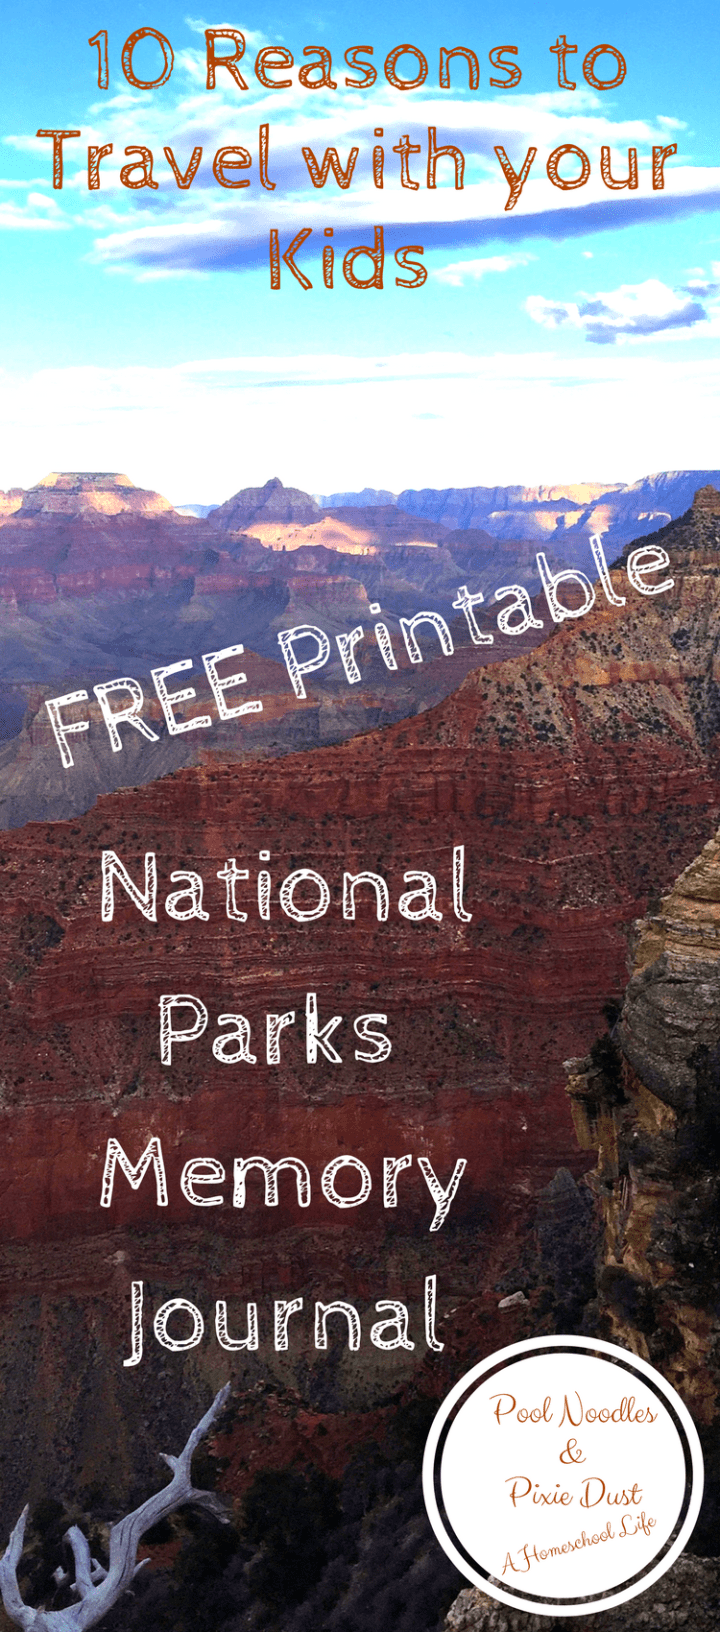 National Parks Memory Journal to record your memories and 10 reasons to travel with your kids.